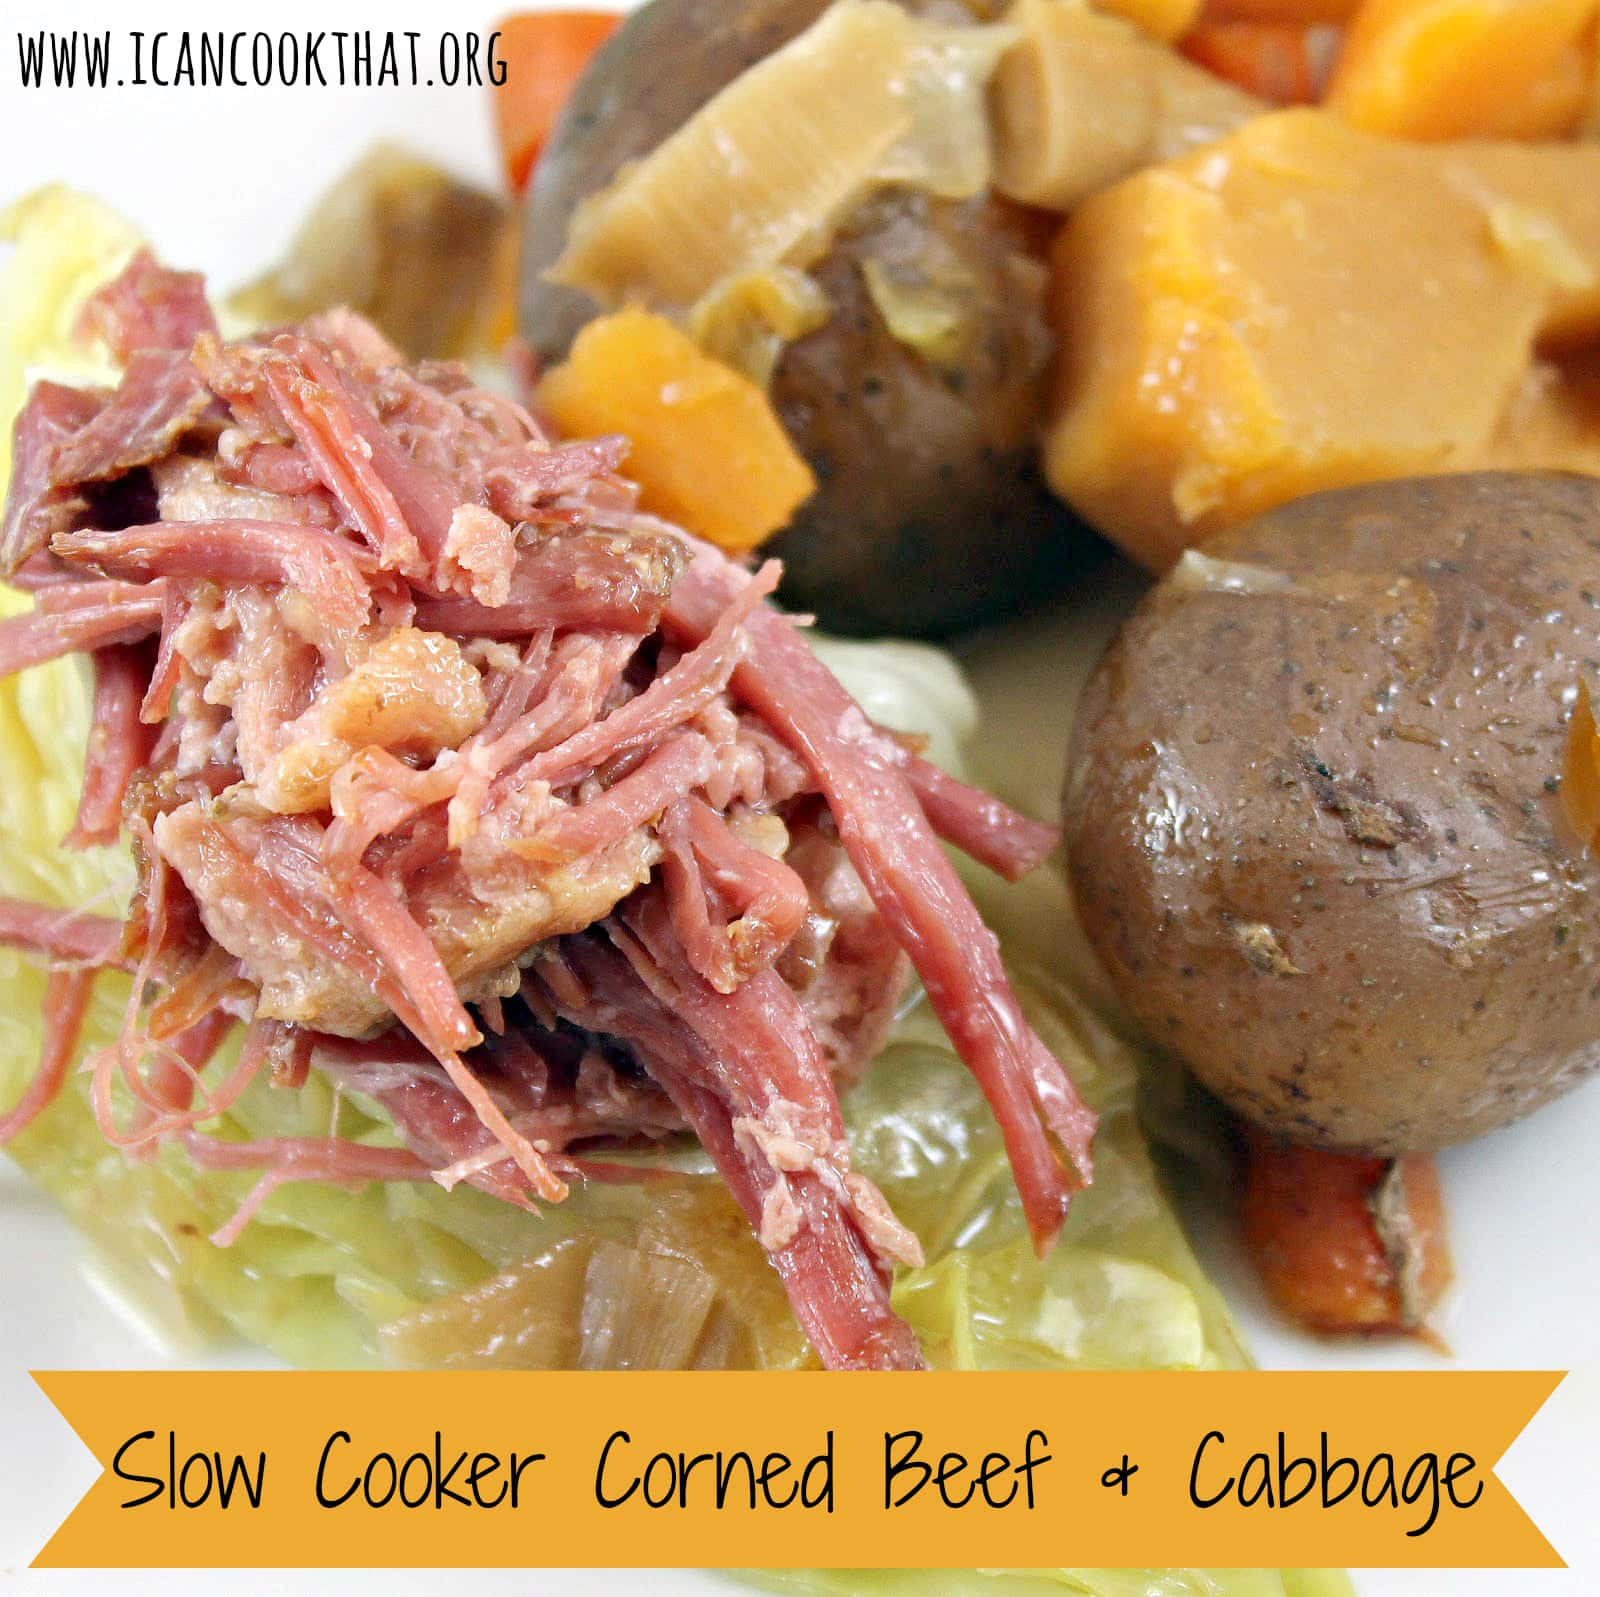 Slow Cooker Corned Beef & Cabbage Recipe | I Can Cook That